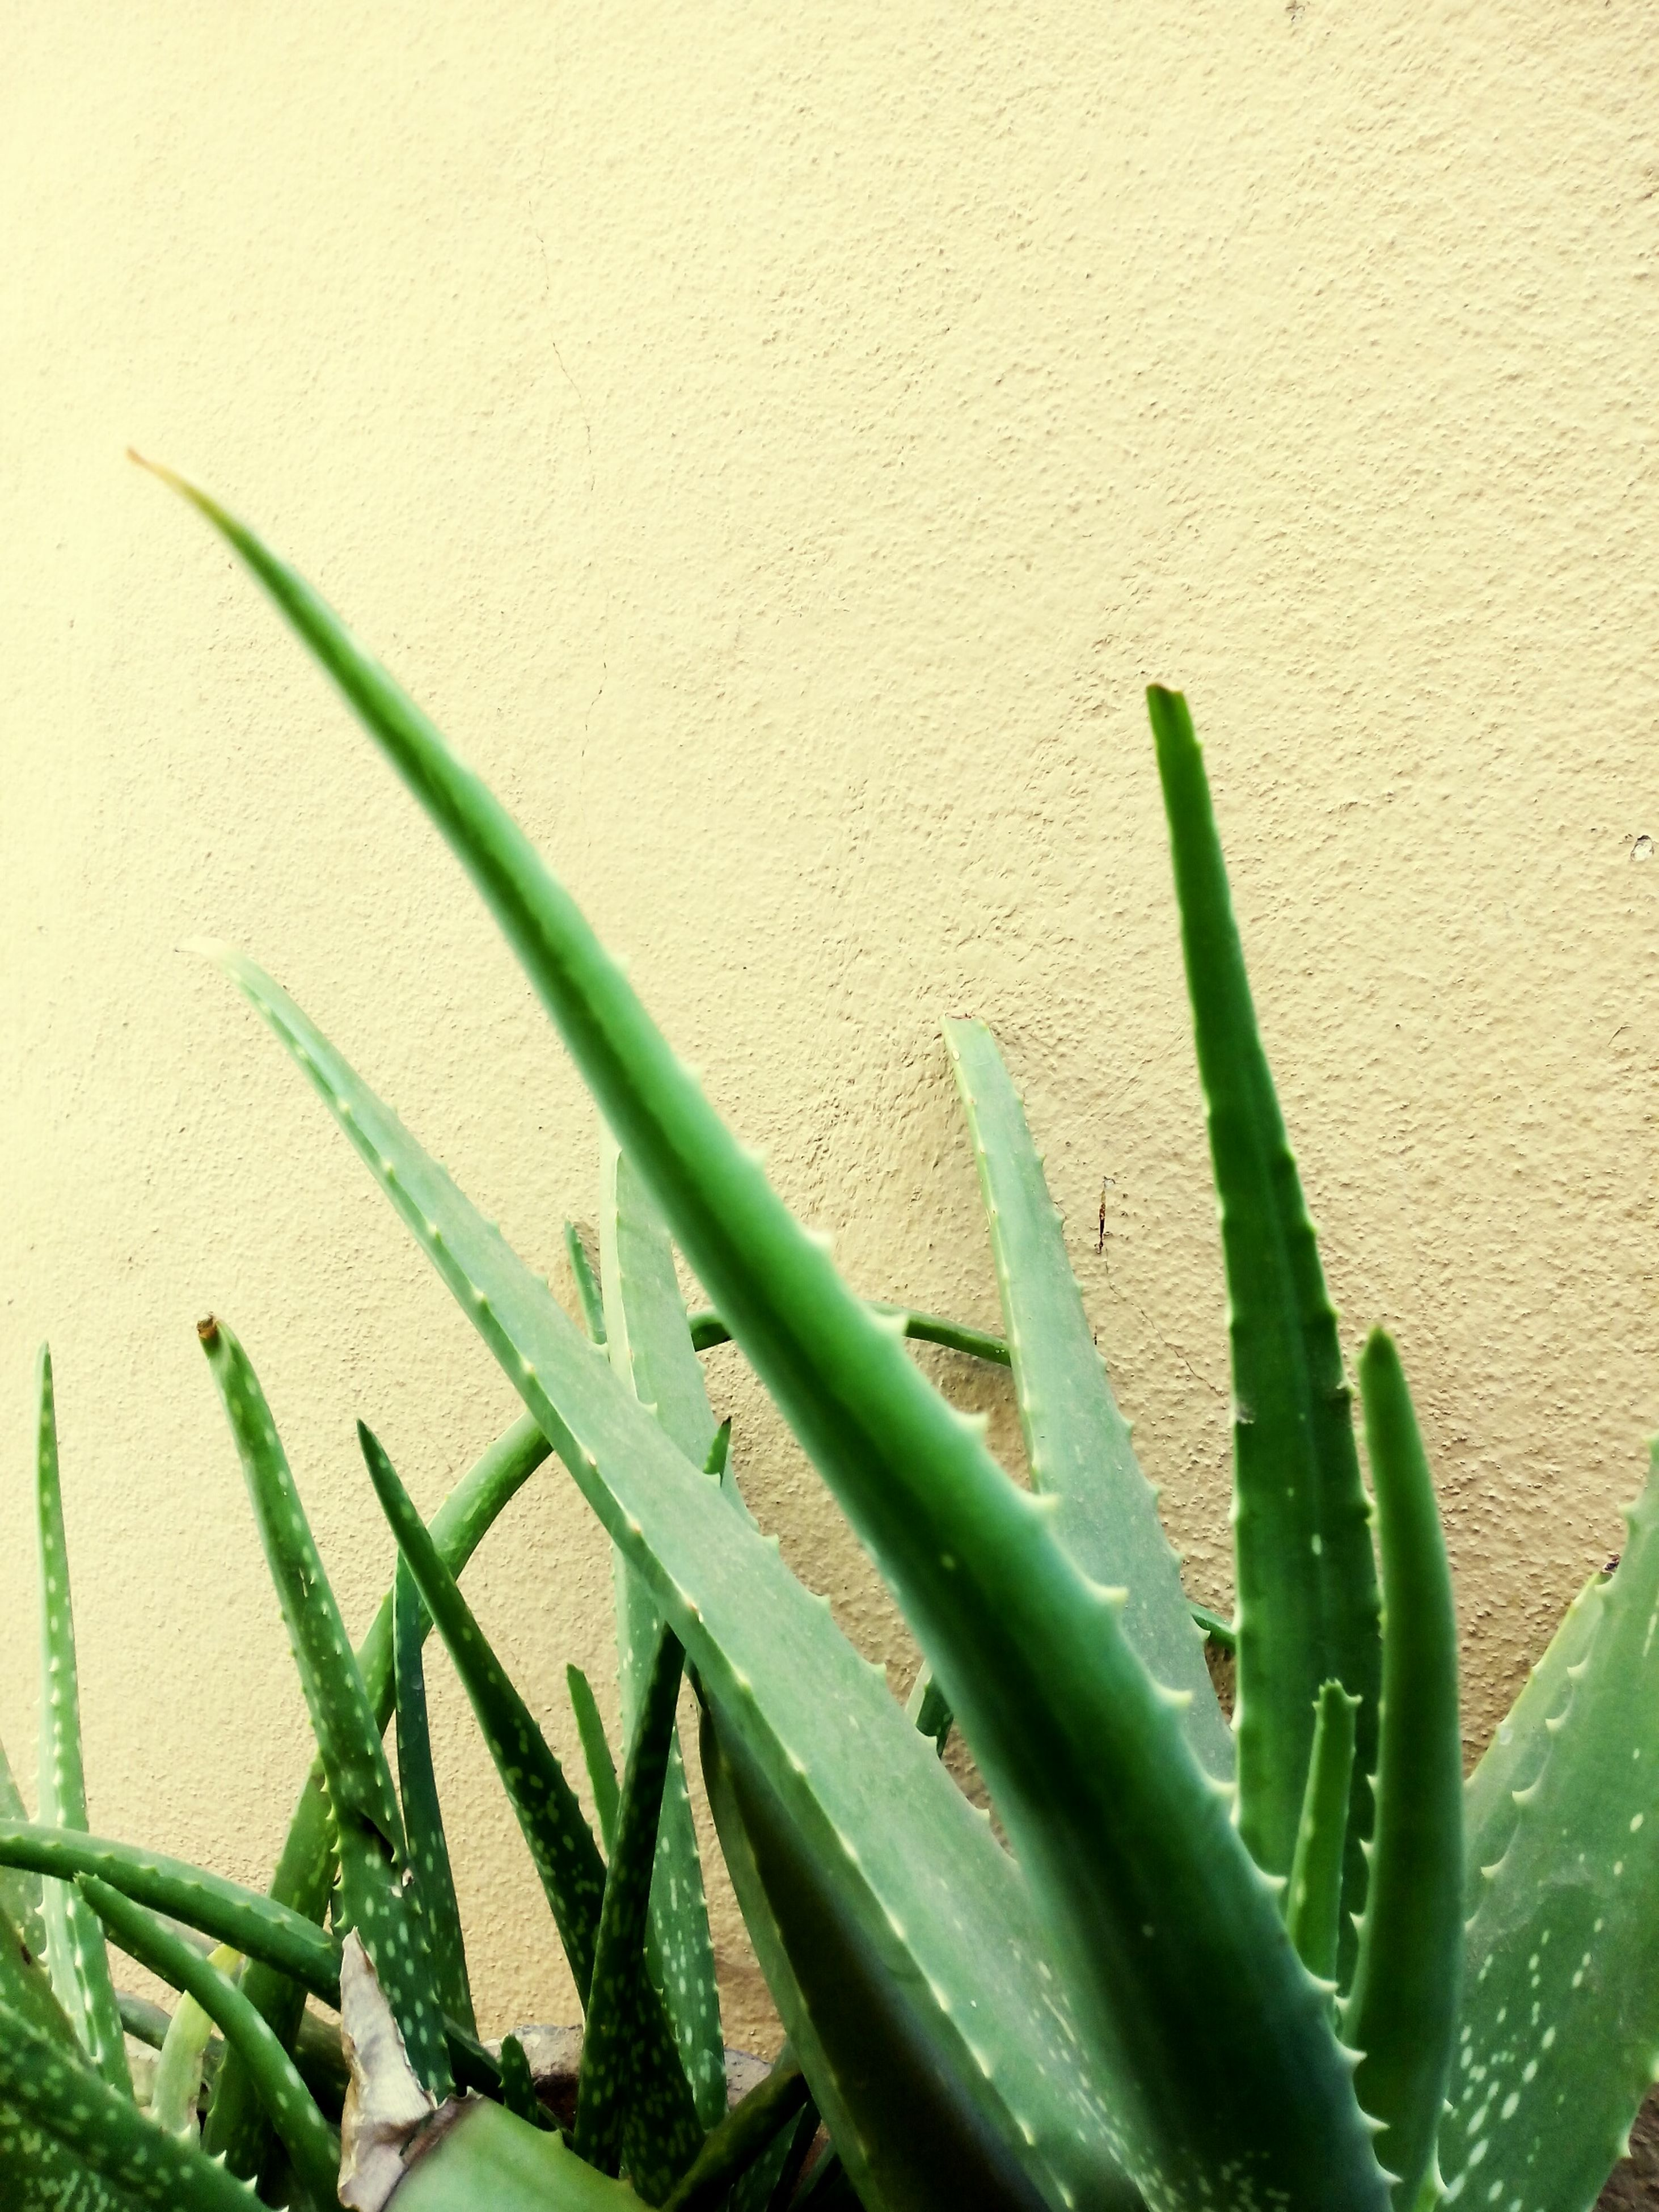 green color, leaf, plant, growth, close-up, nature, green, growing, stem, day, no people, high angle view, outdoors, sharp, cactus, wall - building feature, freshness, grass, spiked, thorn